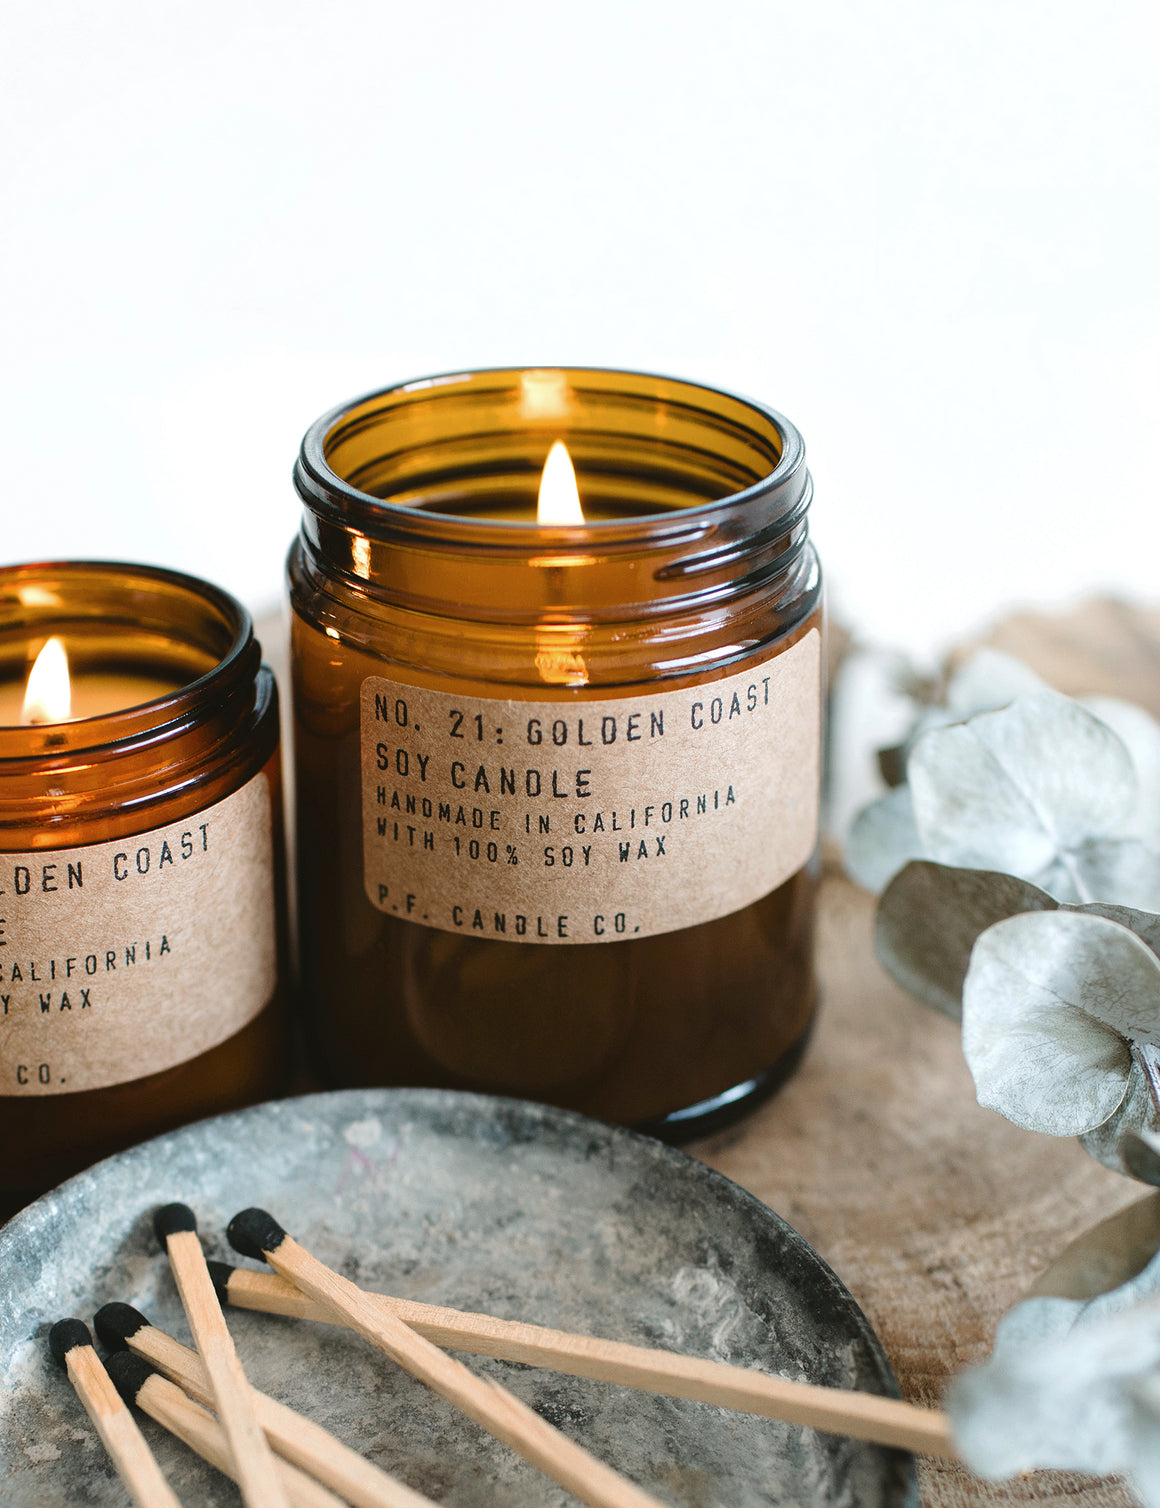 P.F Candle Co. No. 21 Golden Coast Soy Candle